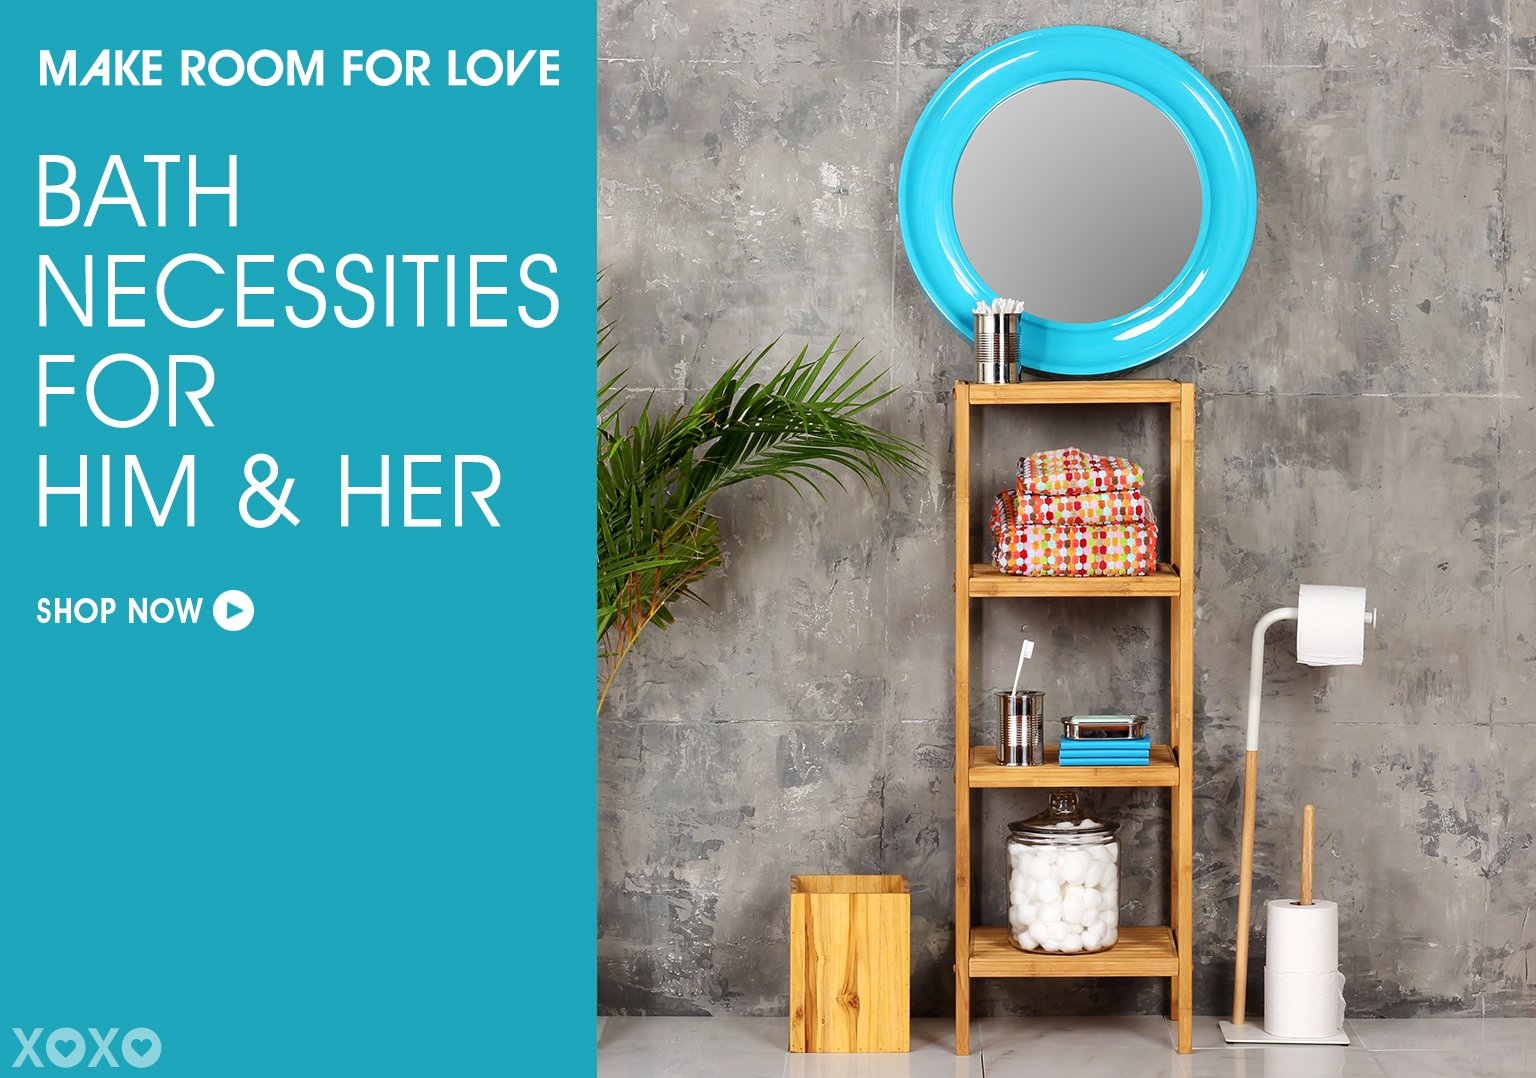 Make Room For Love. Shop Bath Necessities For Him & Her.